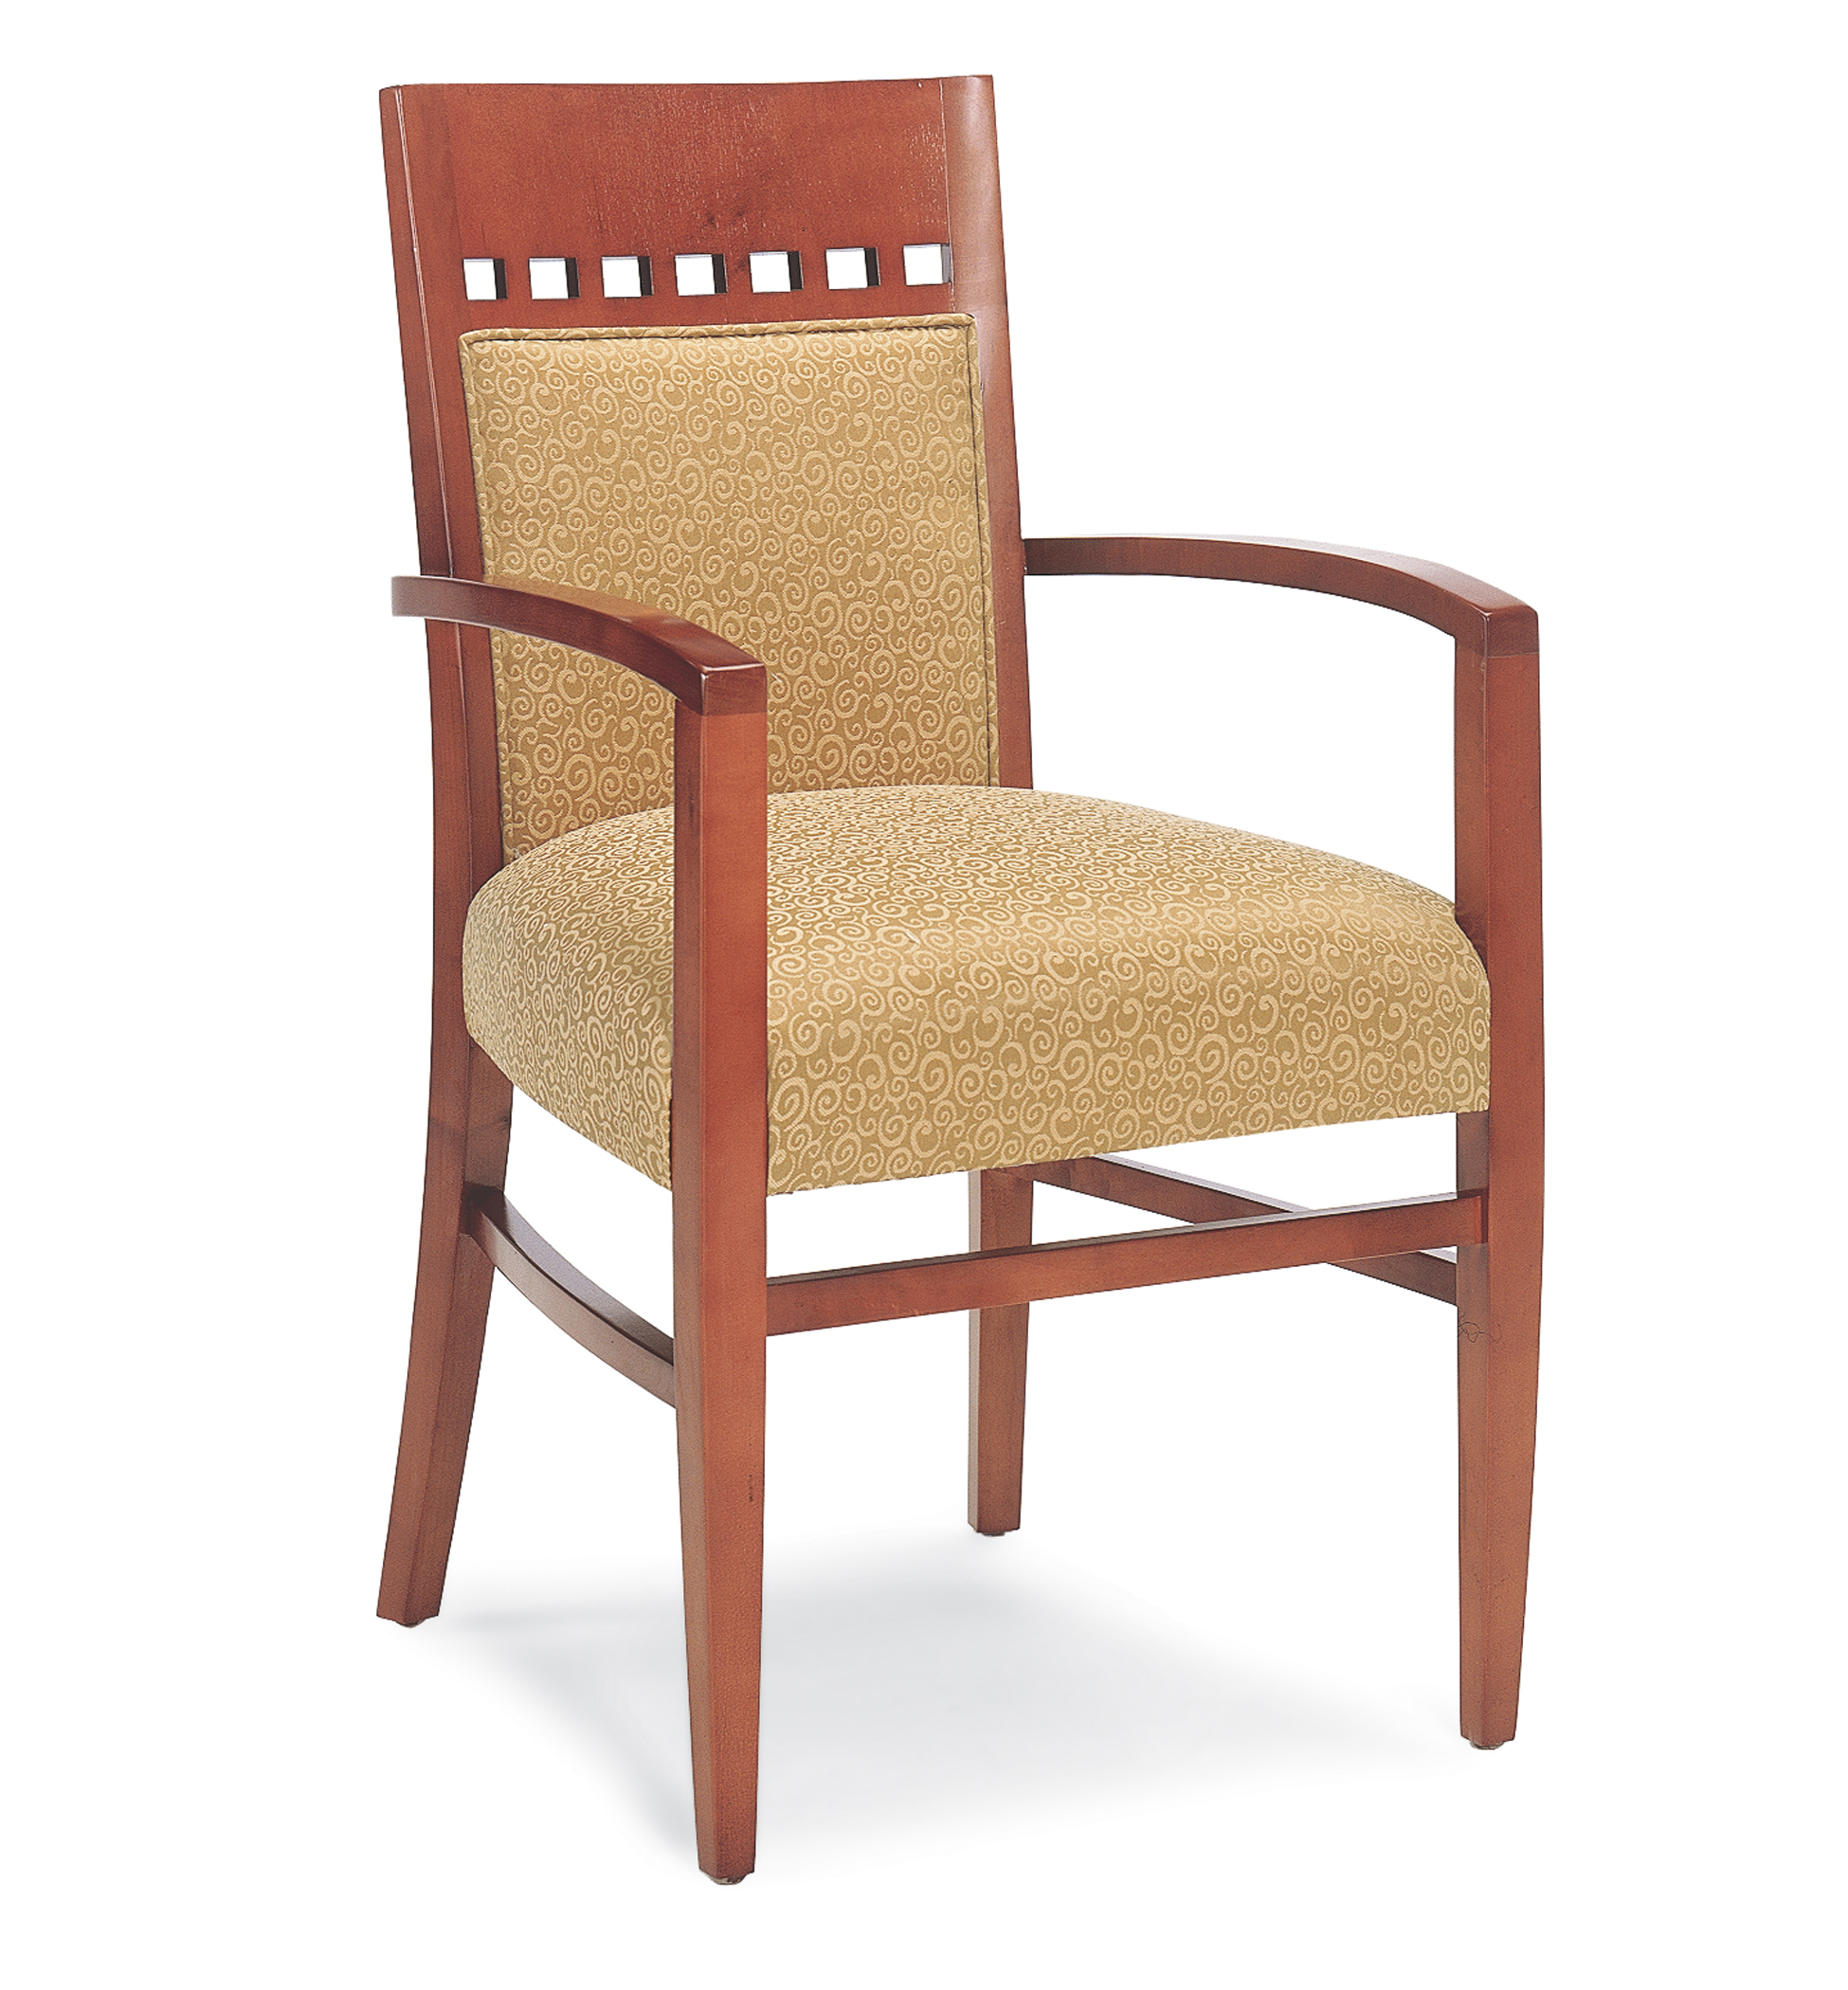 Wooden Chairs With Arms High Quality Hardwood Chairs Awesome Innovative Home Design